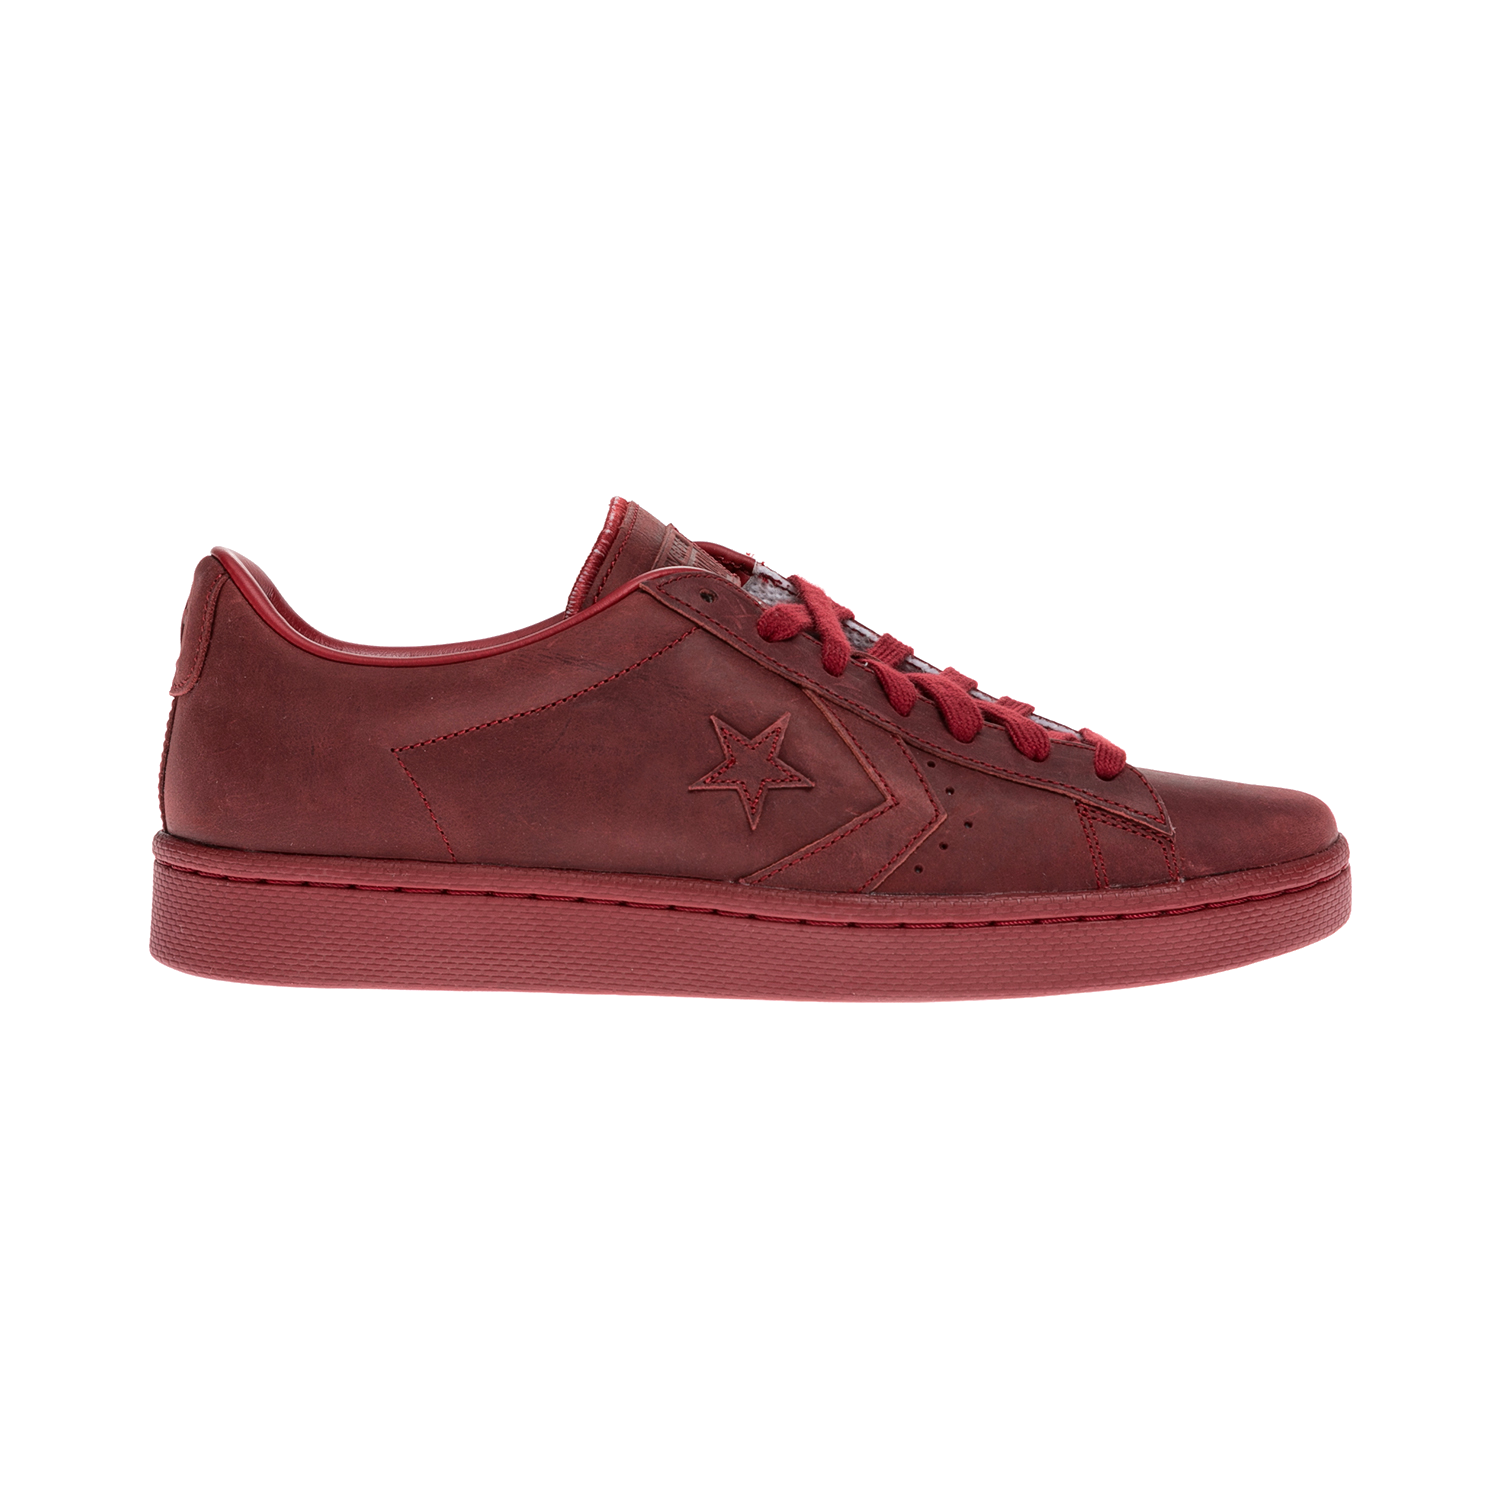 CONVERSE – Unisex παπούτσια QS PRO LEATHER MONO OX κόκκινα